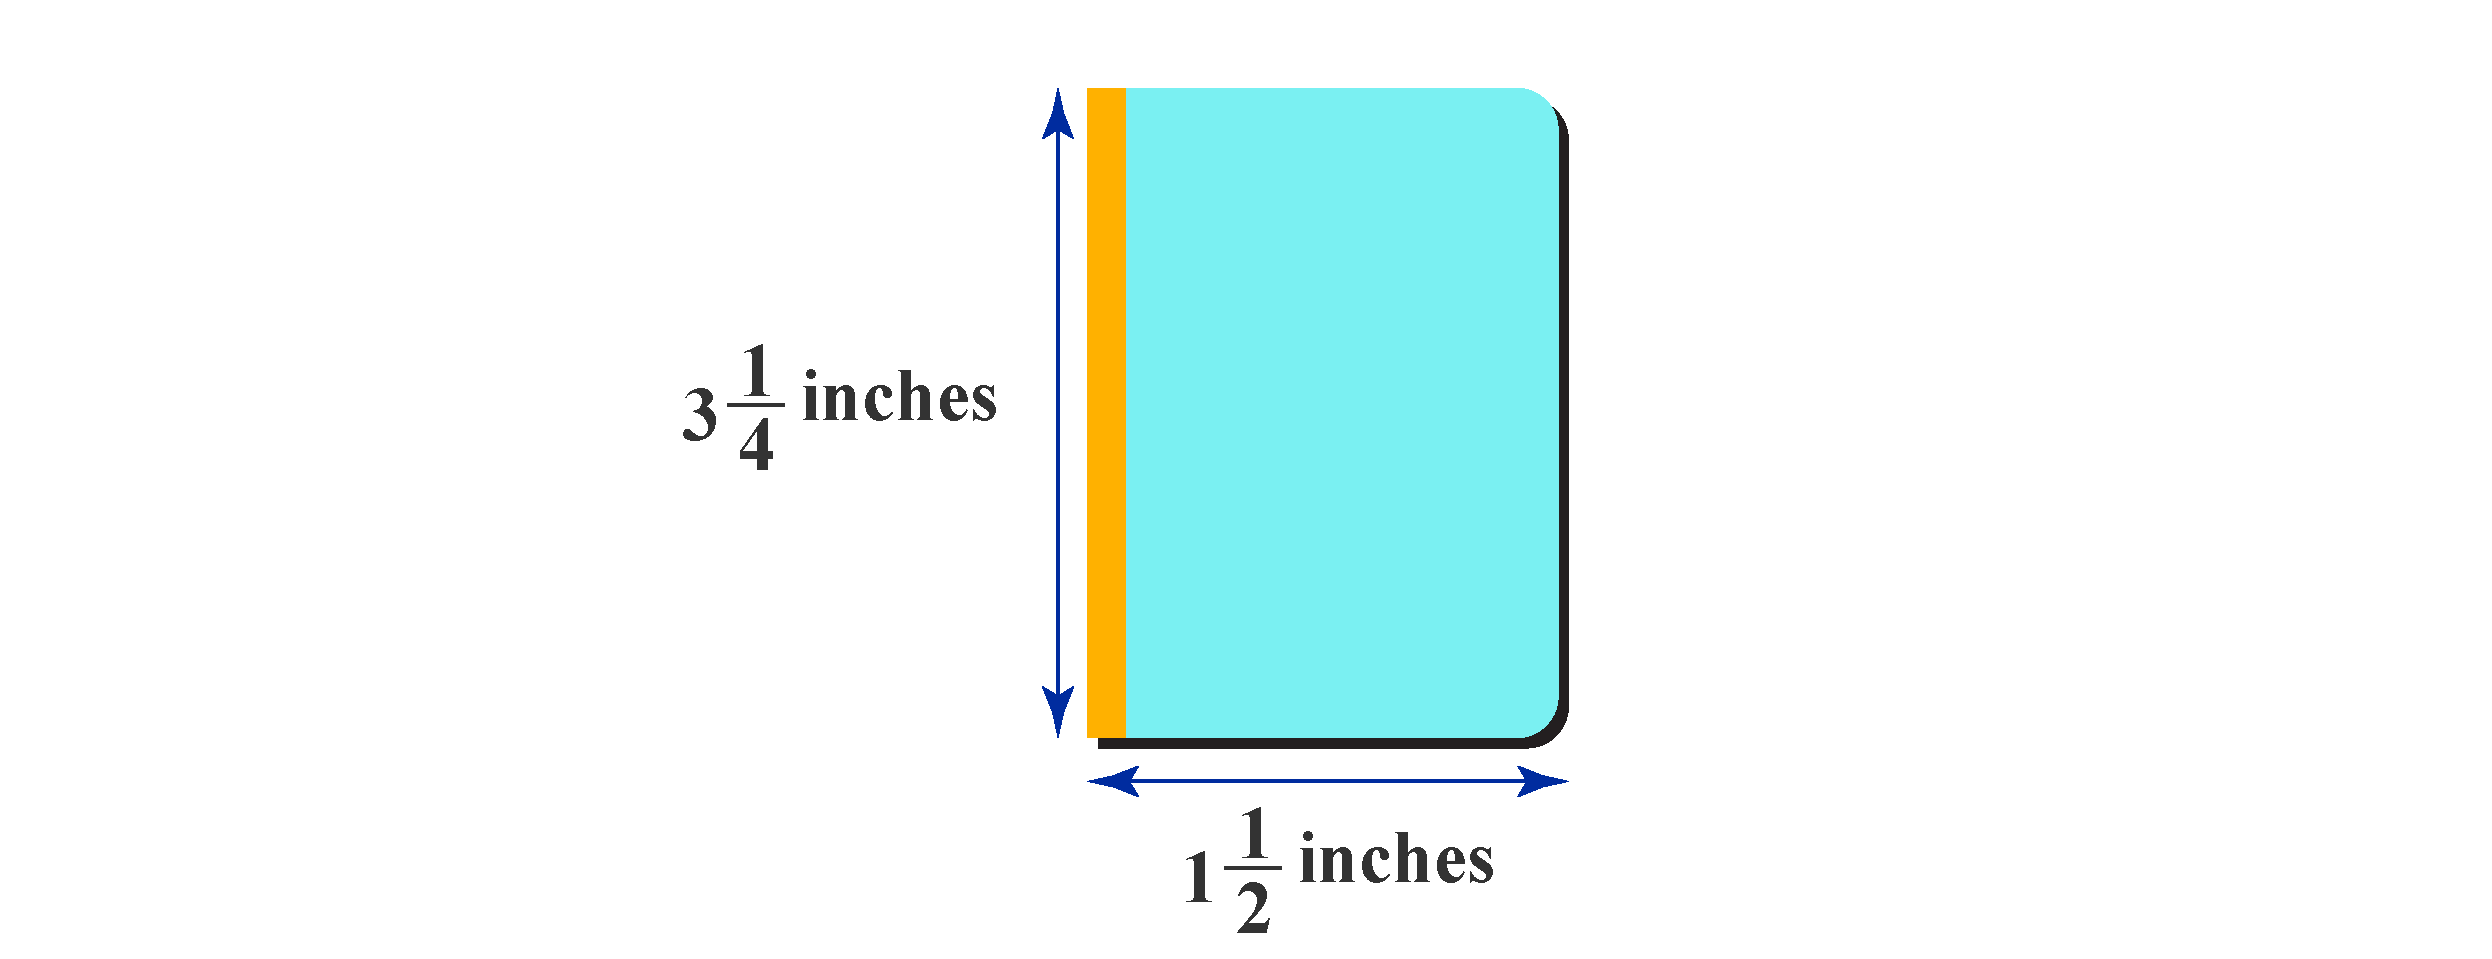 area of rectangle-example